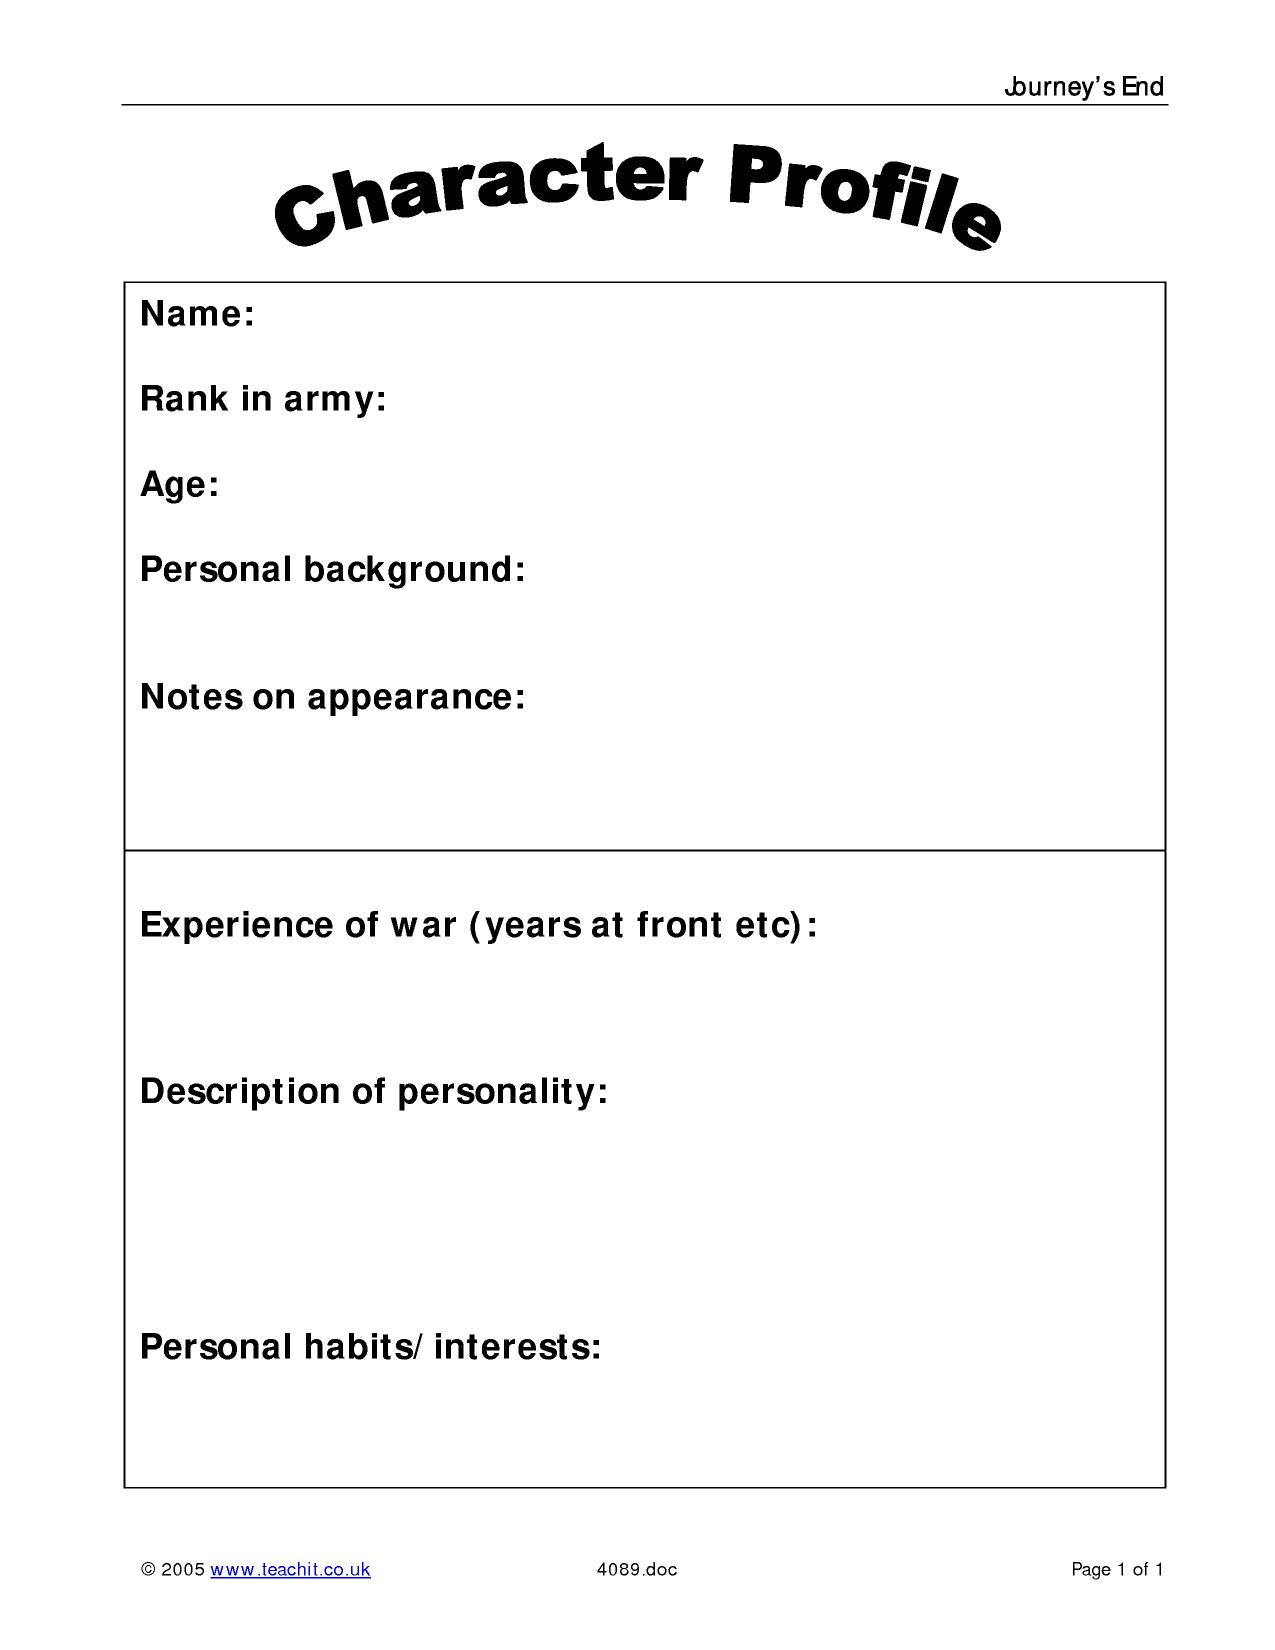 Character Profile